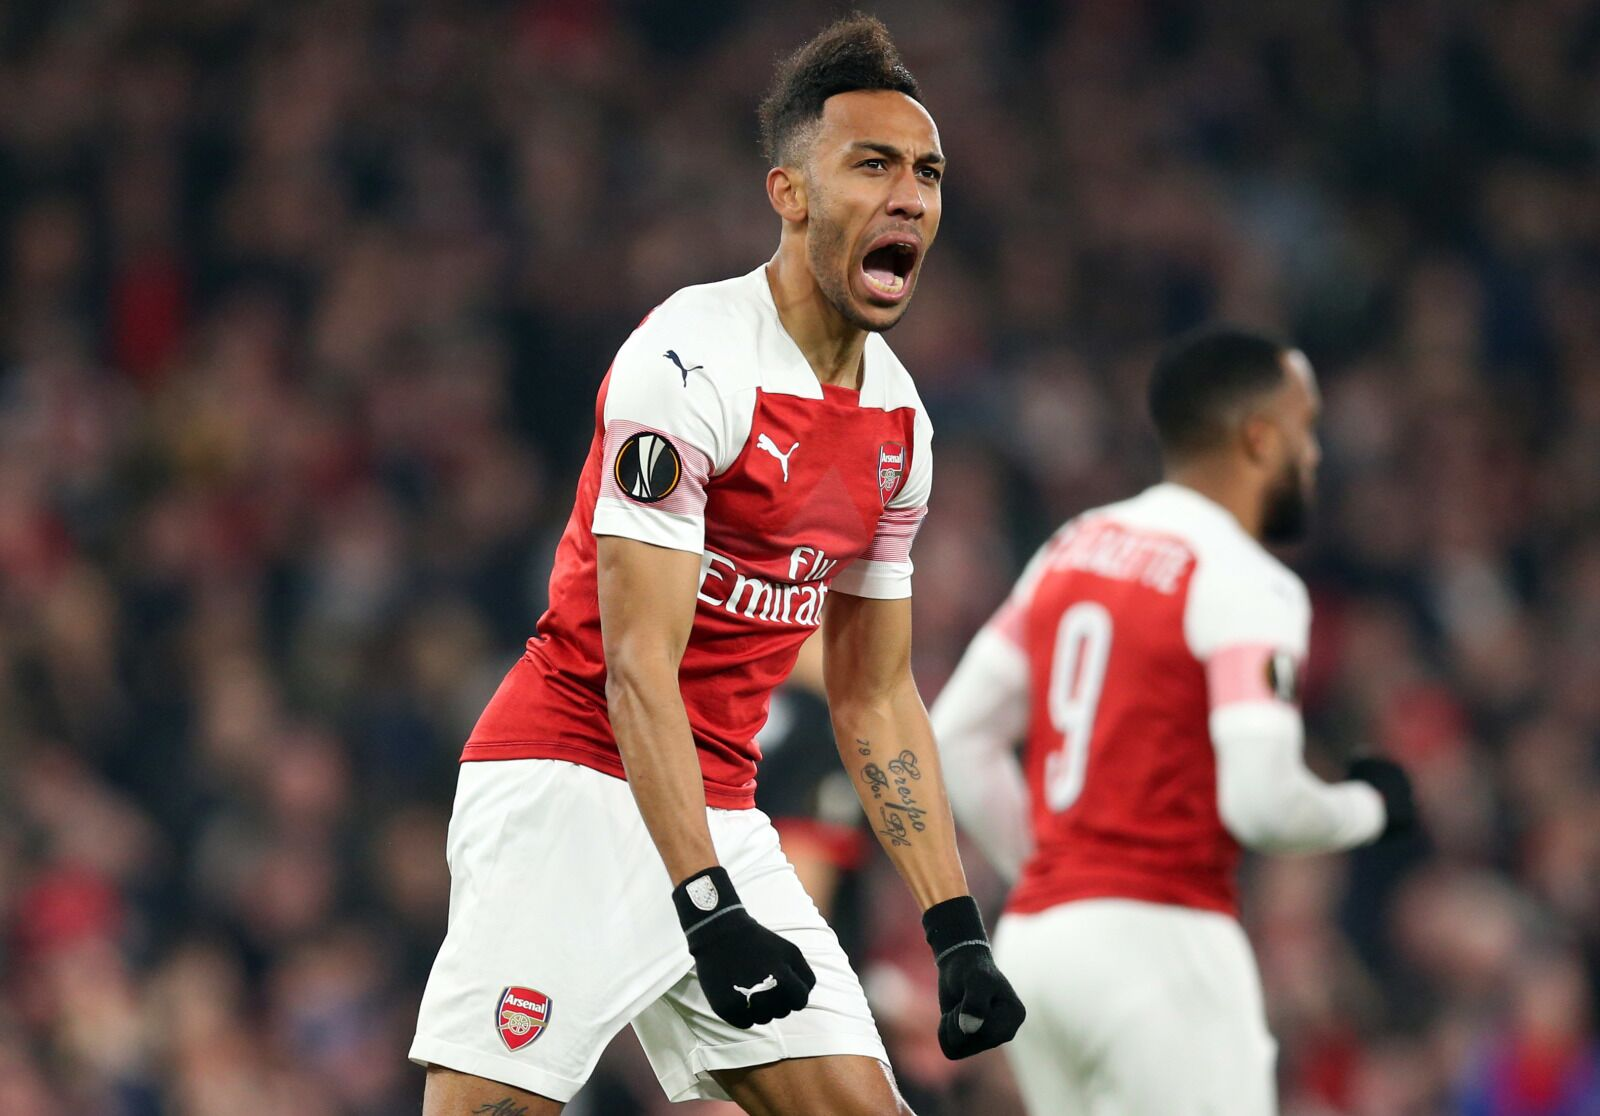 Arsenal: Manchester United can go bark up another tree